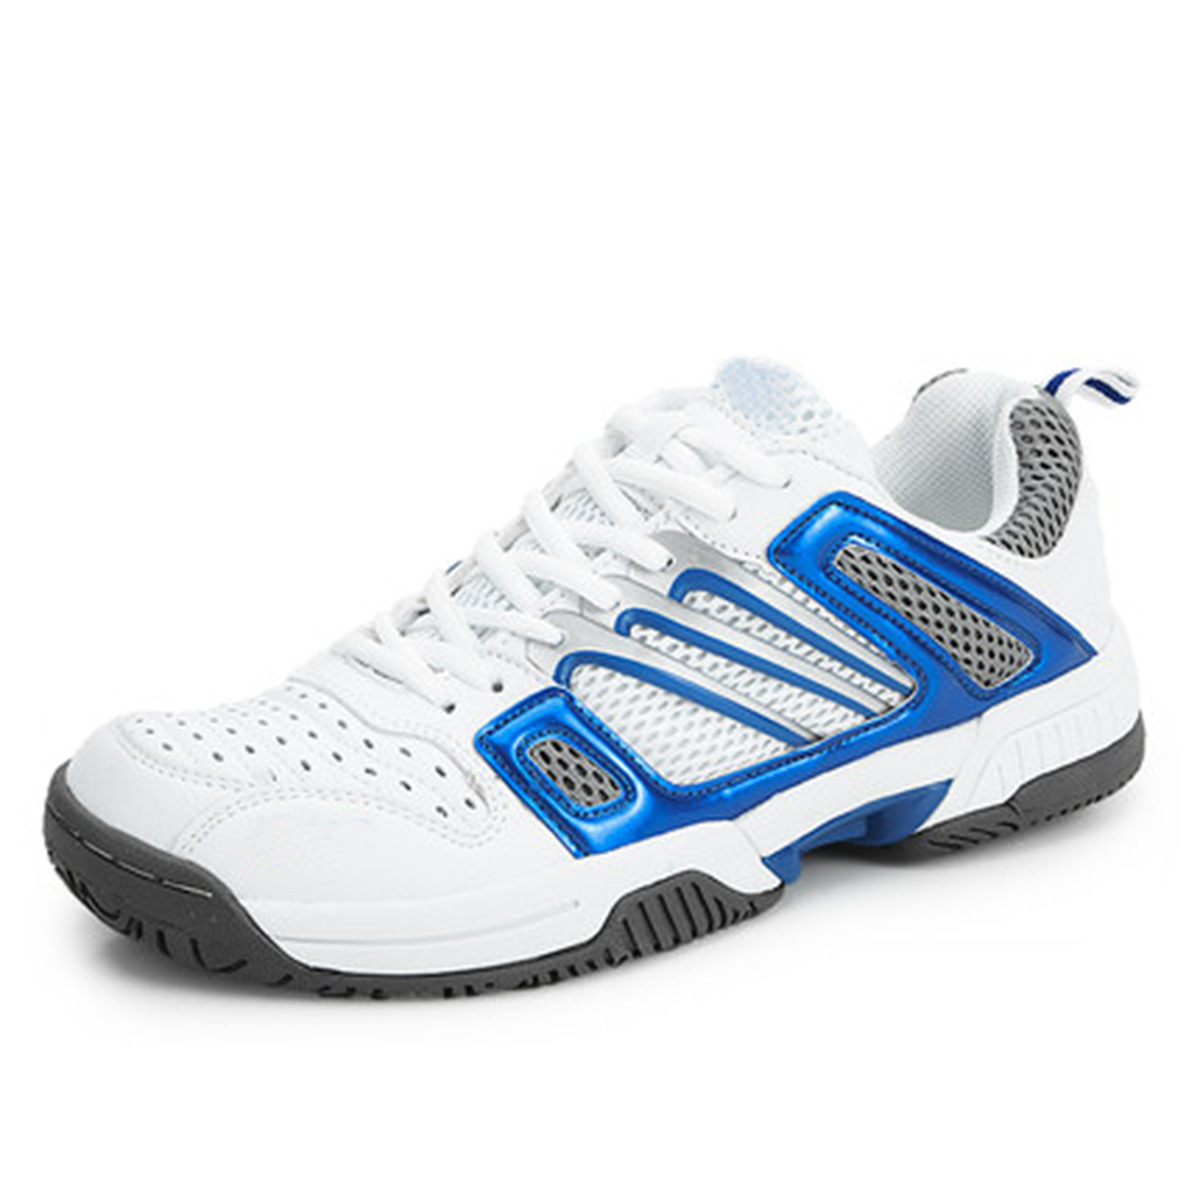 Men Women Unisex Badminton Shoes Anti Slipper Soft Sneakers Professional Tennis Sport Training Shoes(91)(China (Mainland))